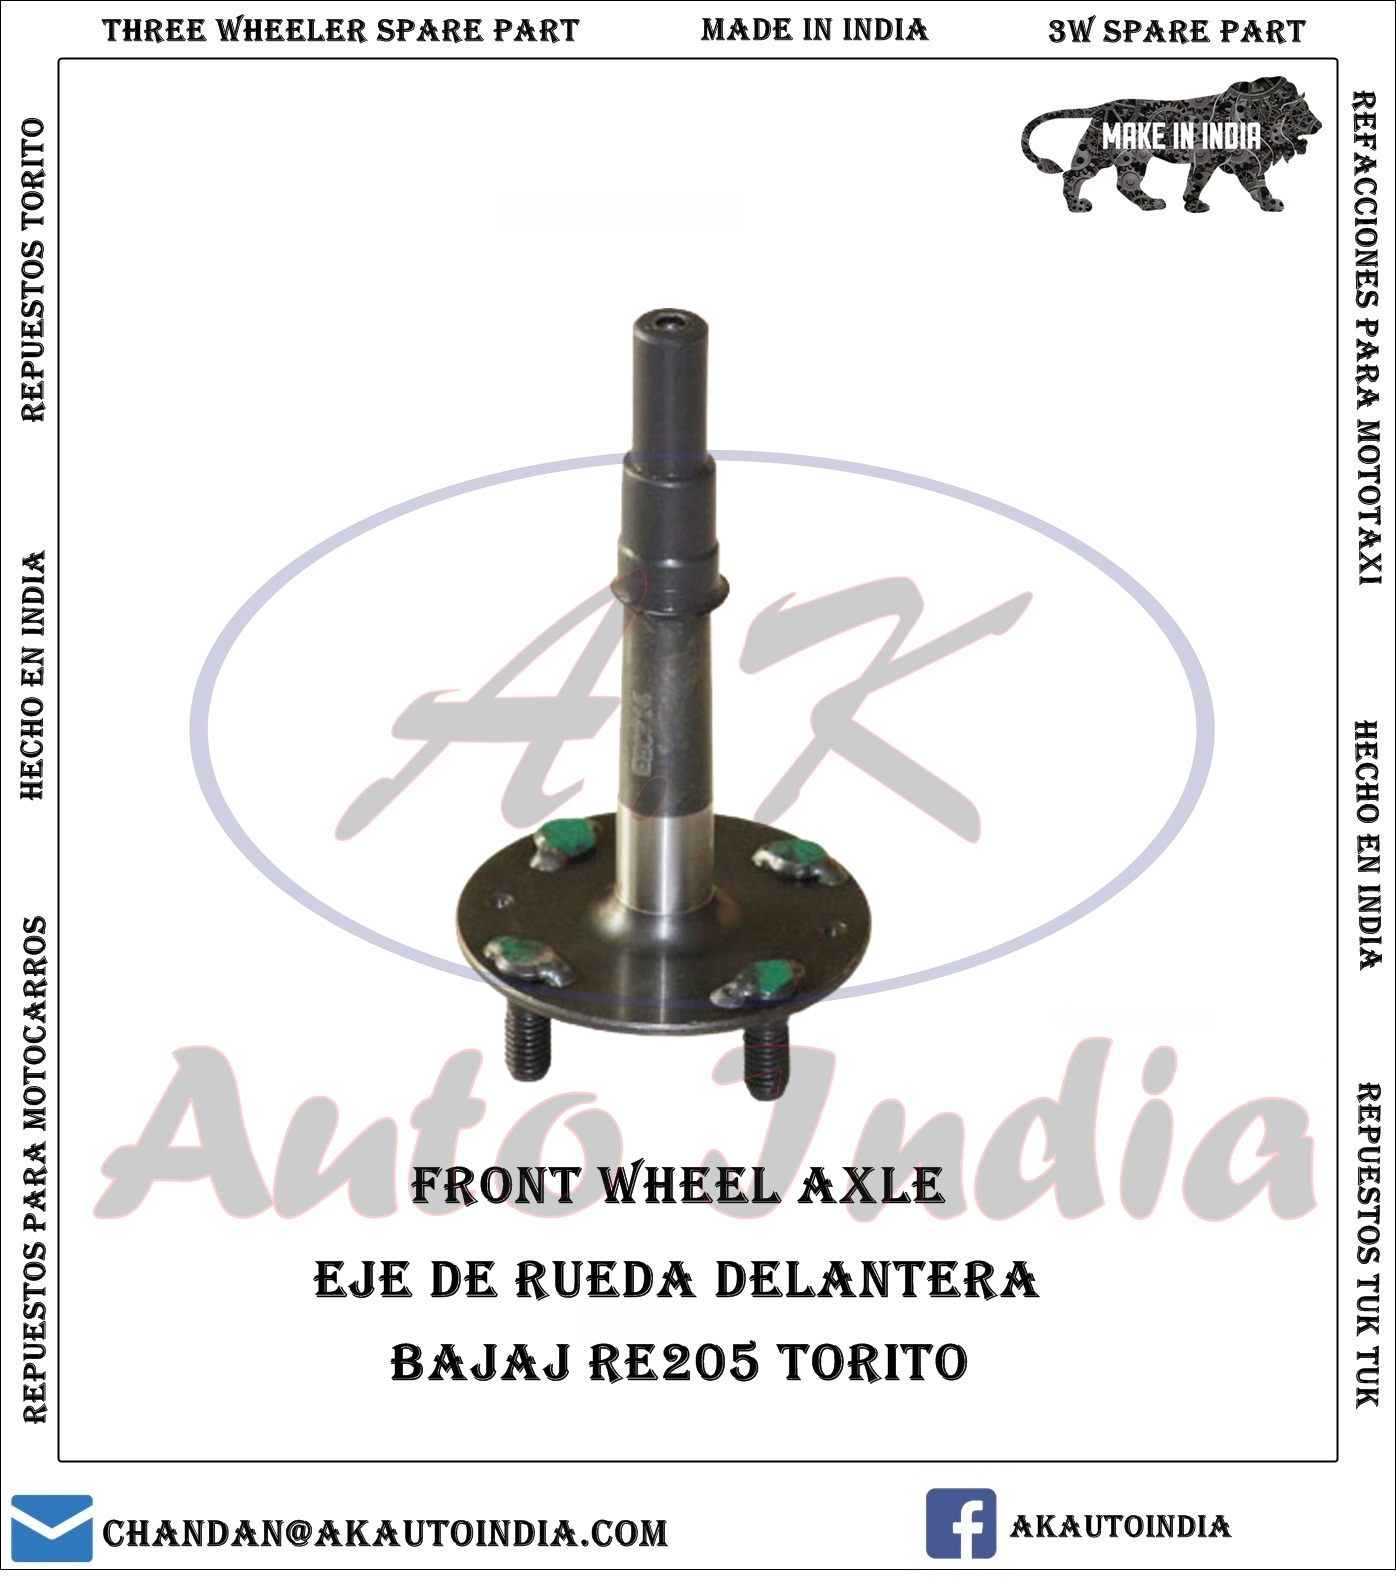 FRONT WHEEL AXLE BAJAJ THREE WHEELER - A.K Auto India